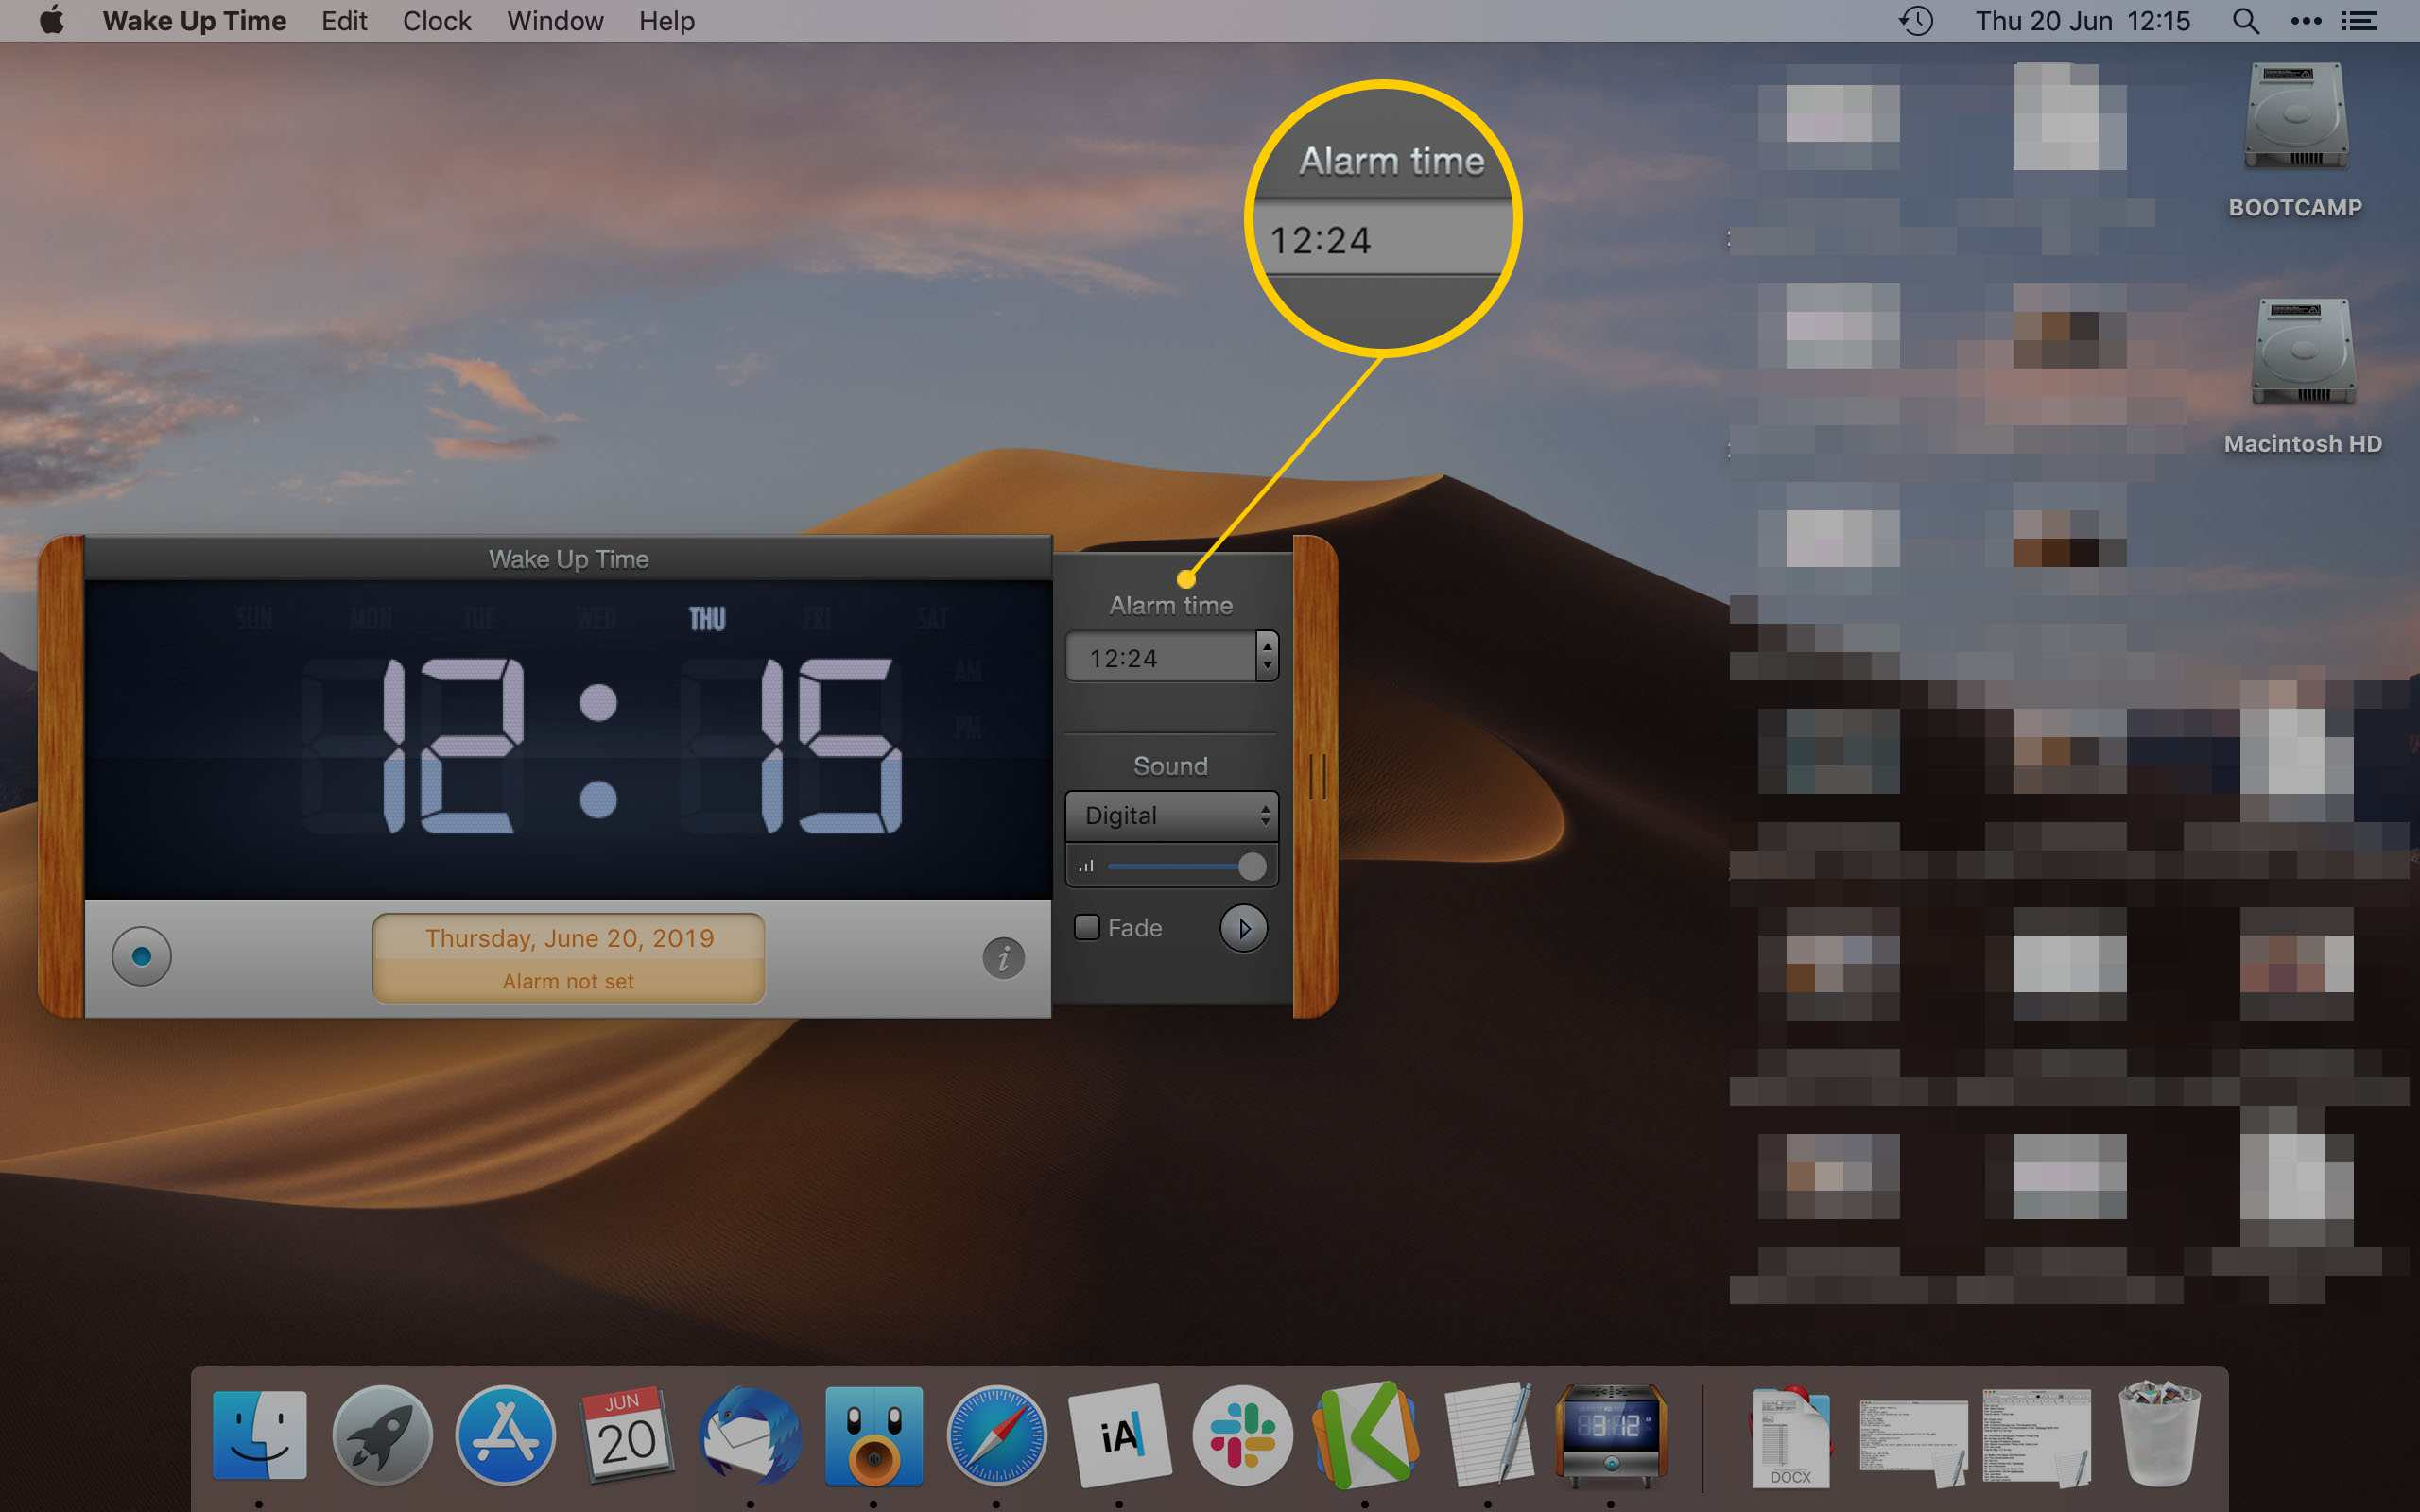 Wake Up Time App on Mac displaying how to set an alarm time